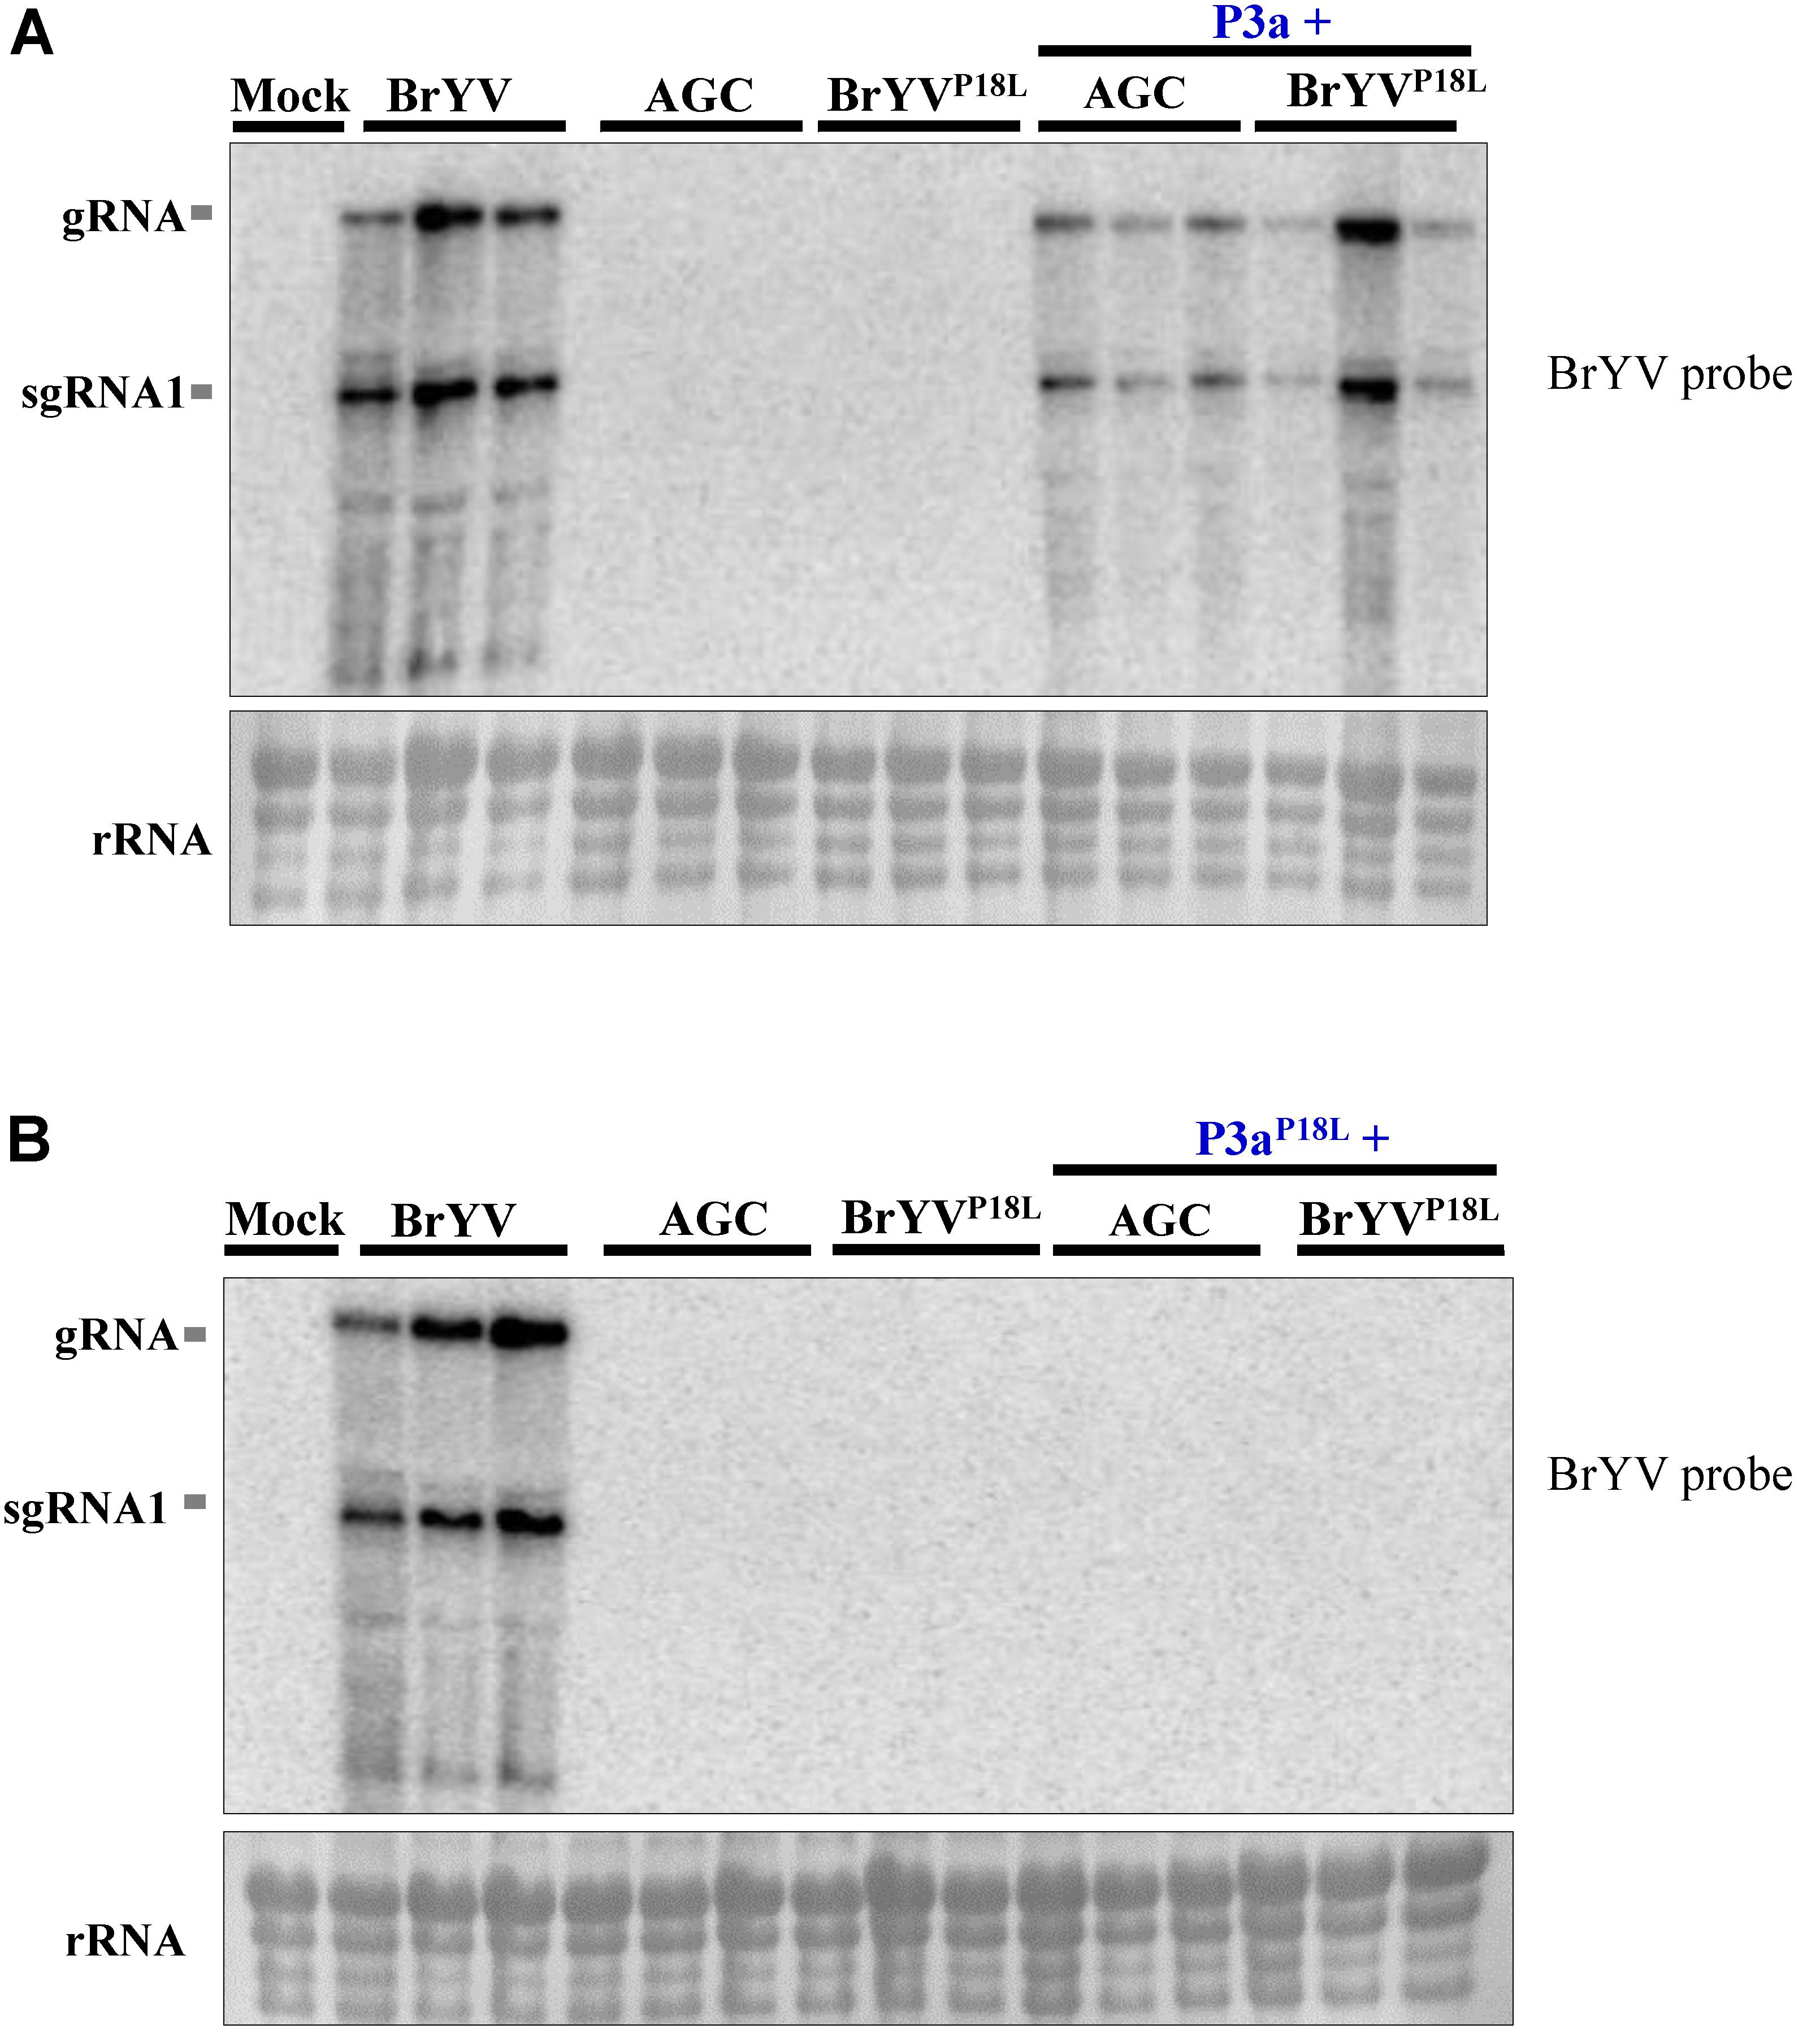 Frontiers | The Conserved Proline18 in the Polerovirus P3a